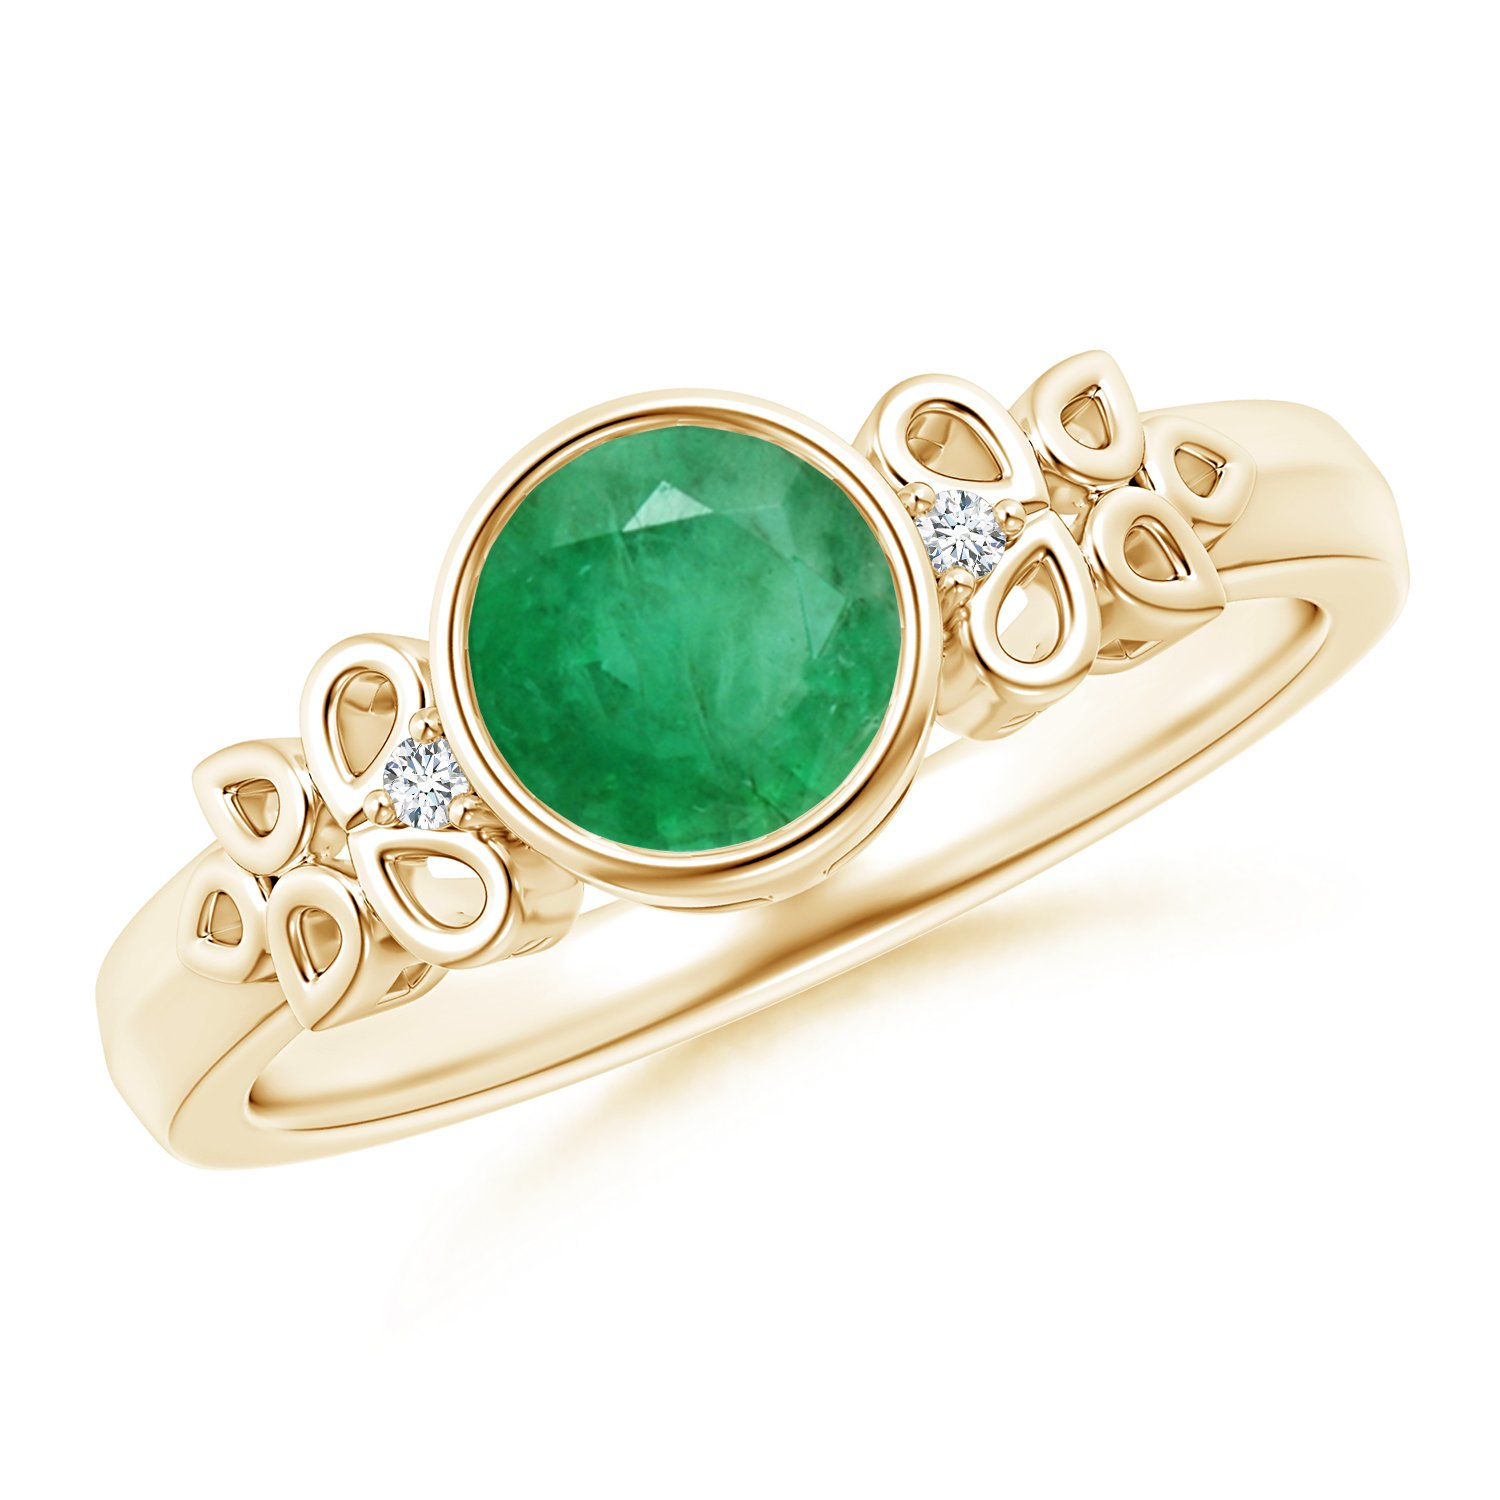 May Birthstone - Vintage Round Emerald Bezel Ring for Women with Diamond Accents in 14K Yellow Gold (6mm Emerald)